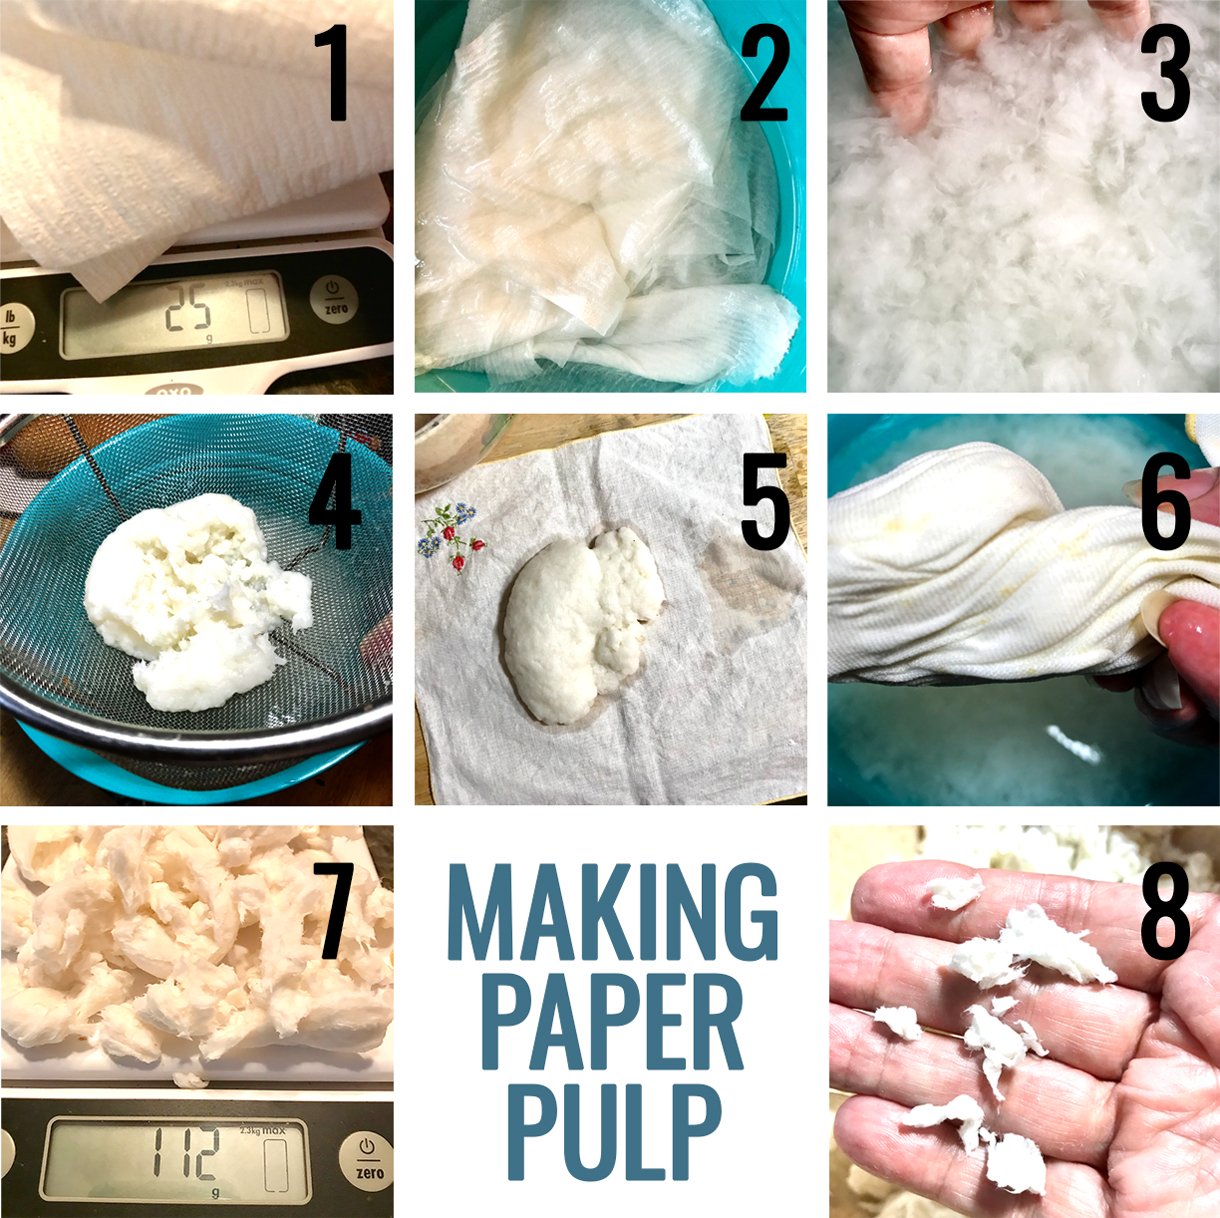 Making Paper Pulp Steps